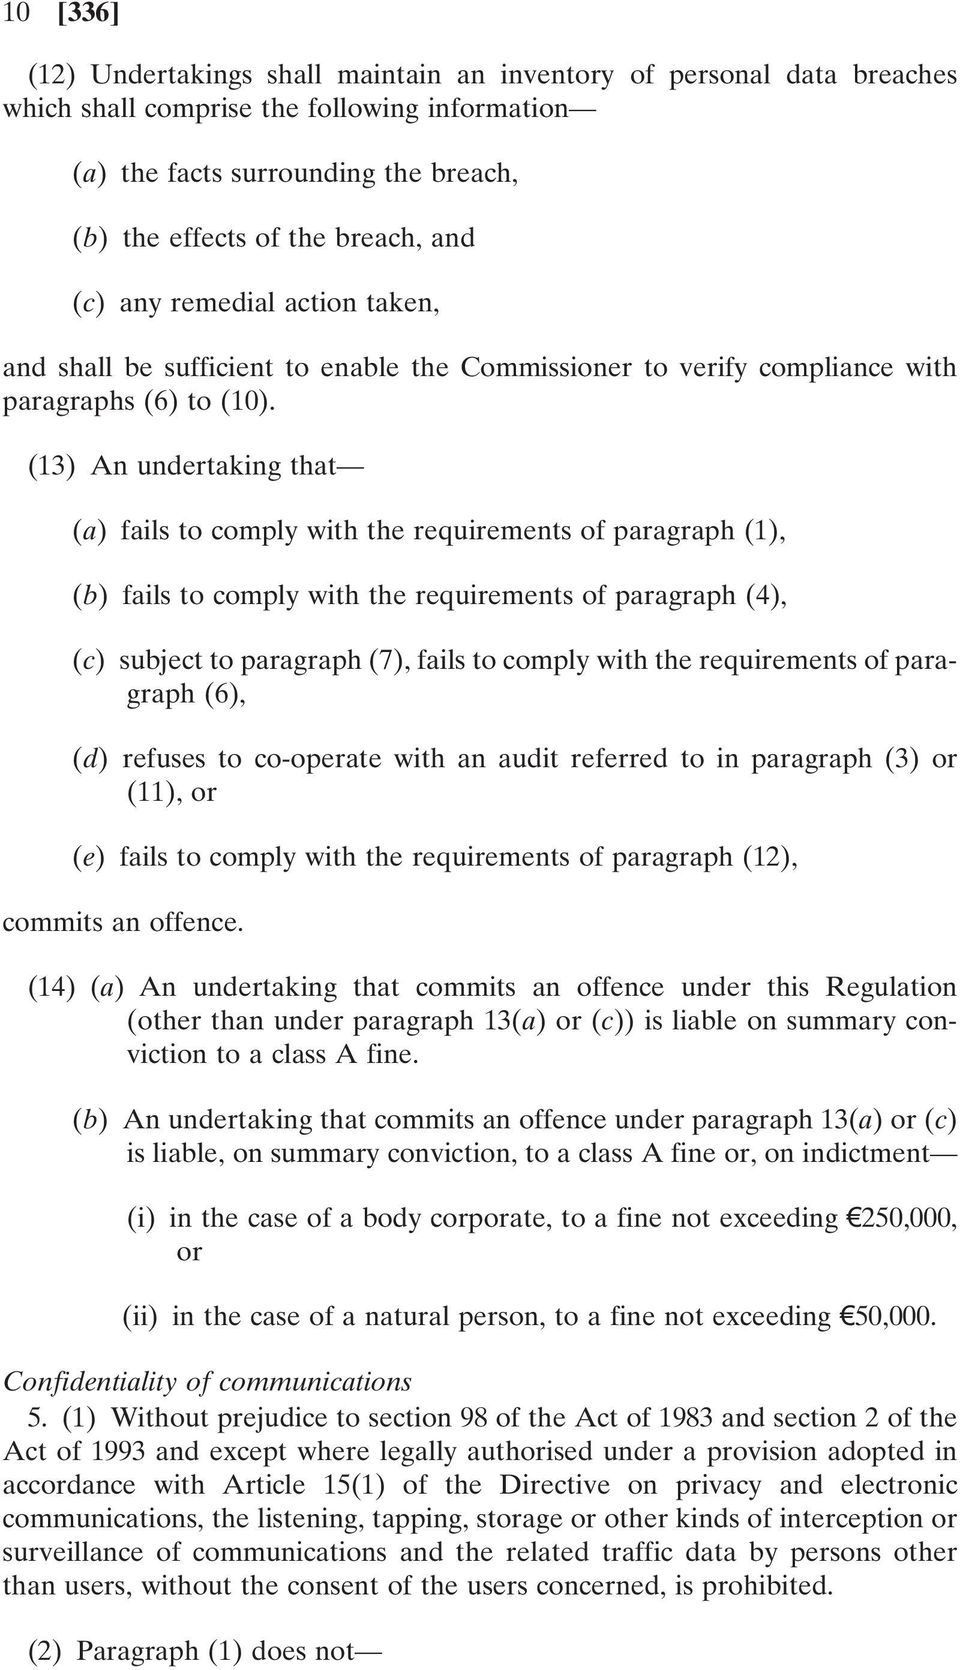 (13) An undertaking that (a) fails to comply with the requirements of paragraph (1), (b) fails to comply with the requirements of paragraph (4), (c) subject to paragraph (7), fails to comply with the